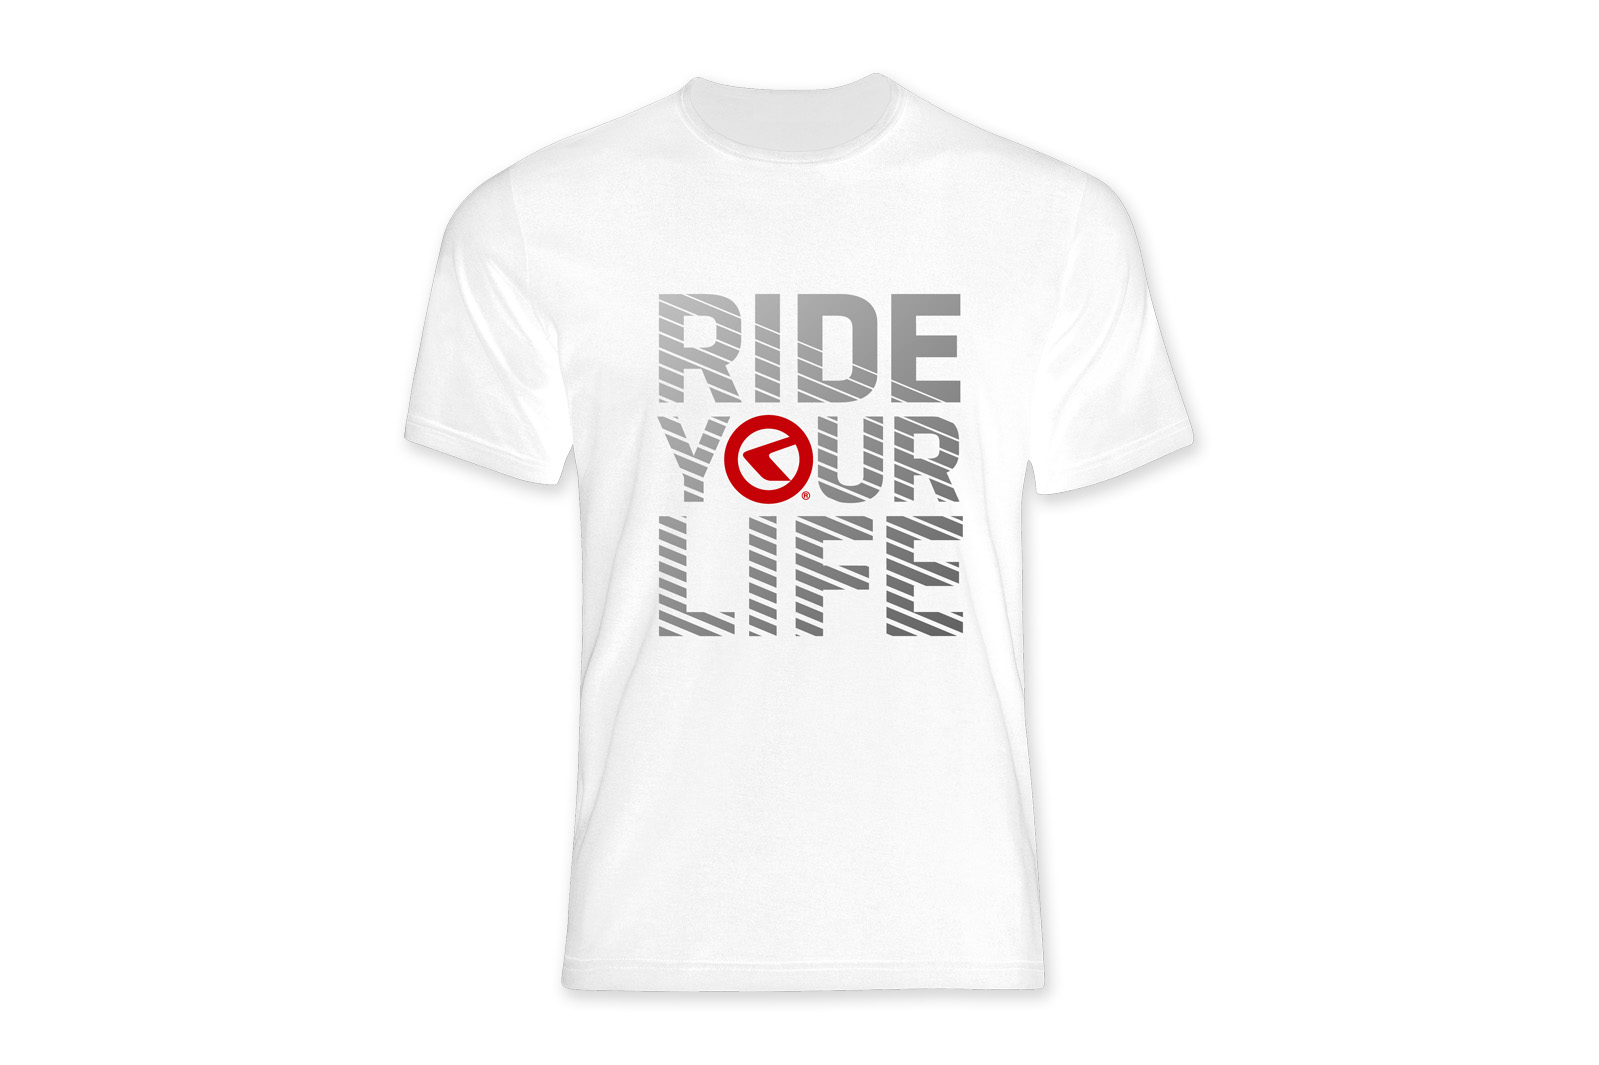 T-Shirt KELLYS RIDE YOUR LIFE kurzarm white - XL - T-Shirt KELLYS RIDE YOUR LIFE kurzarm white - XL